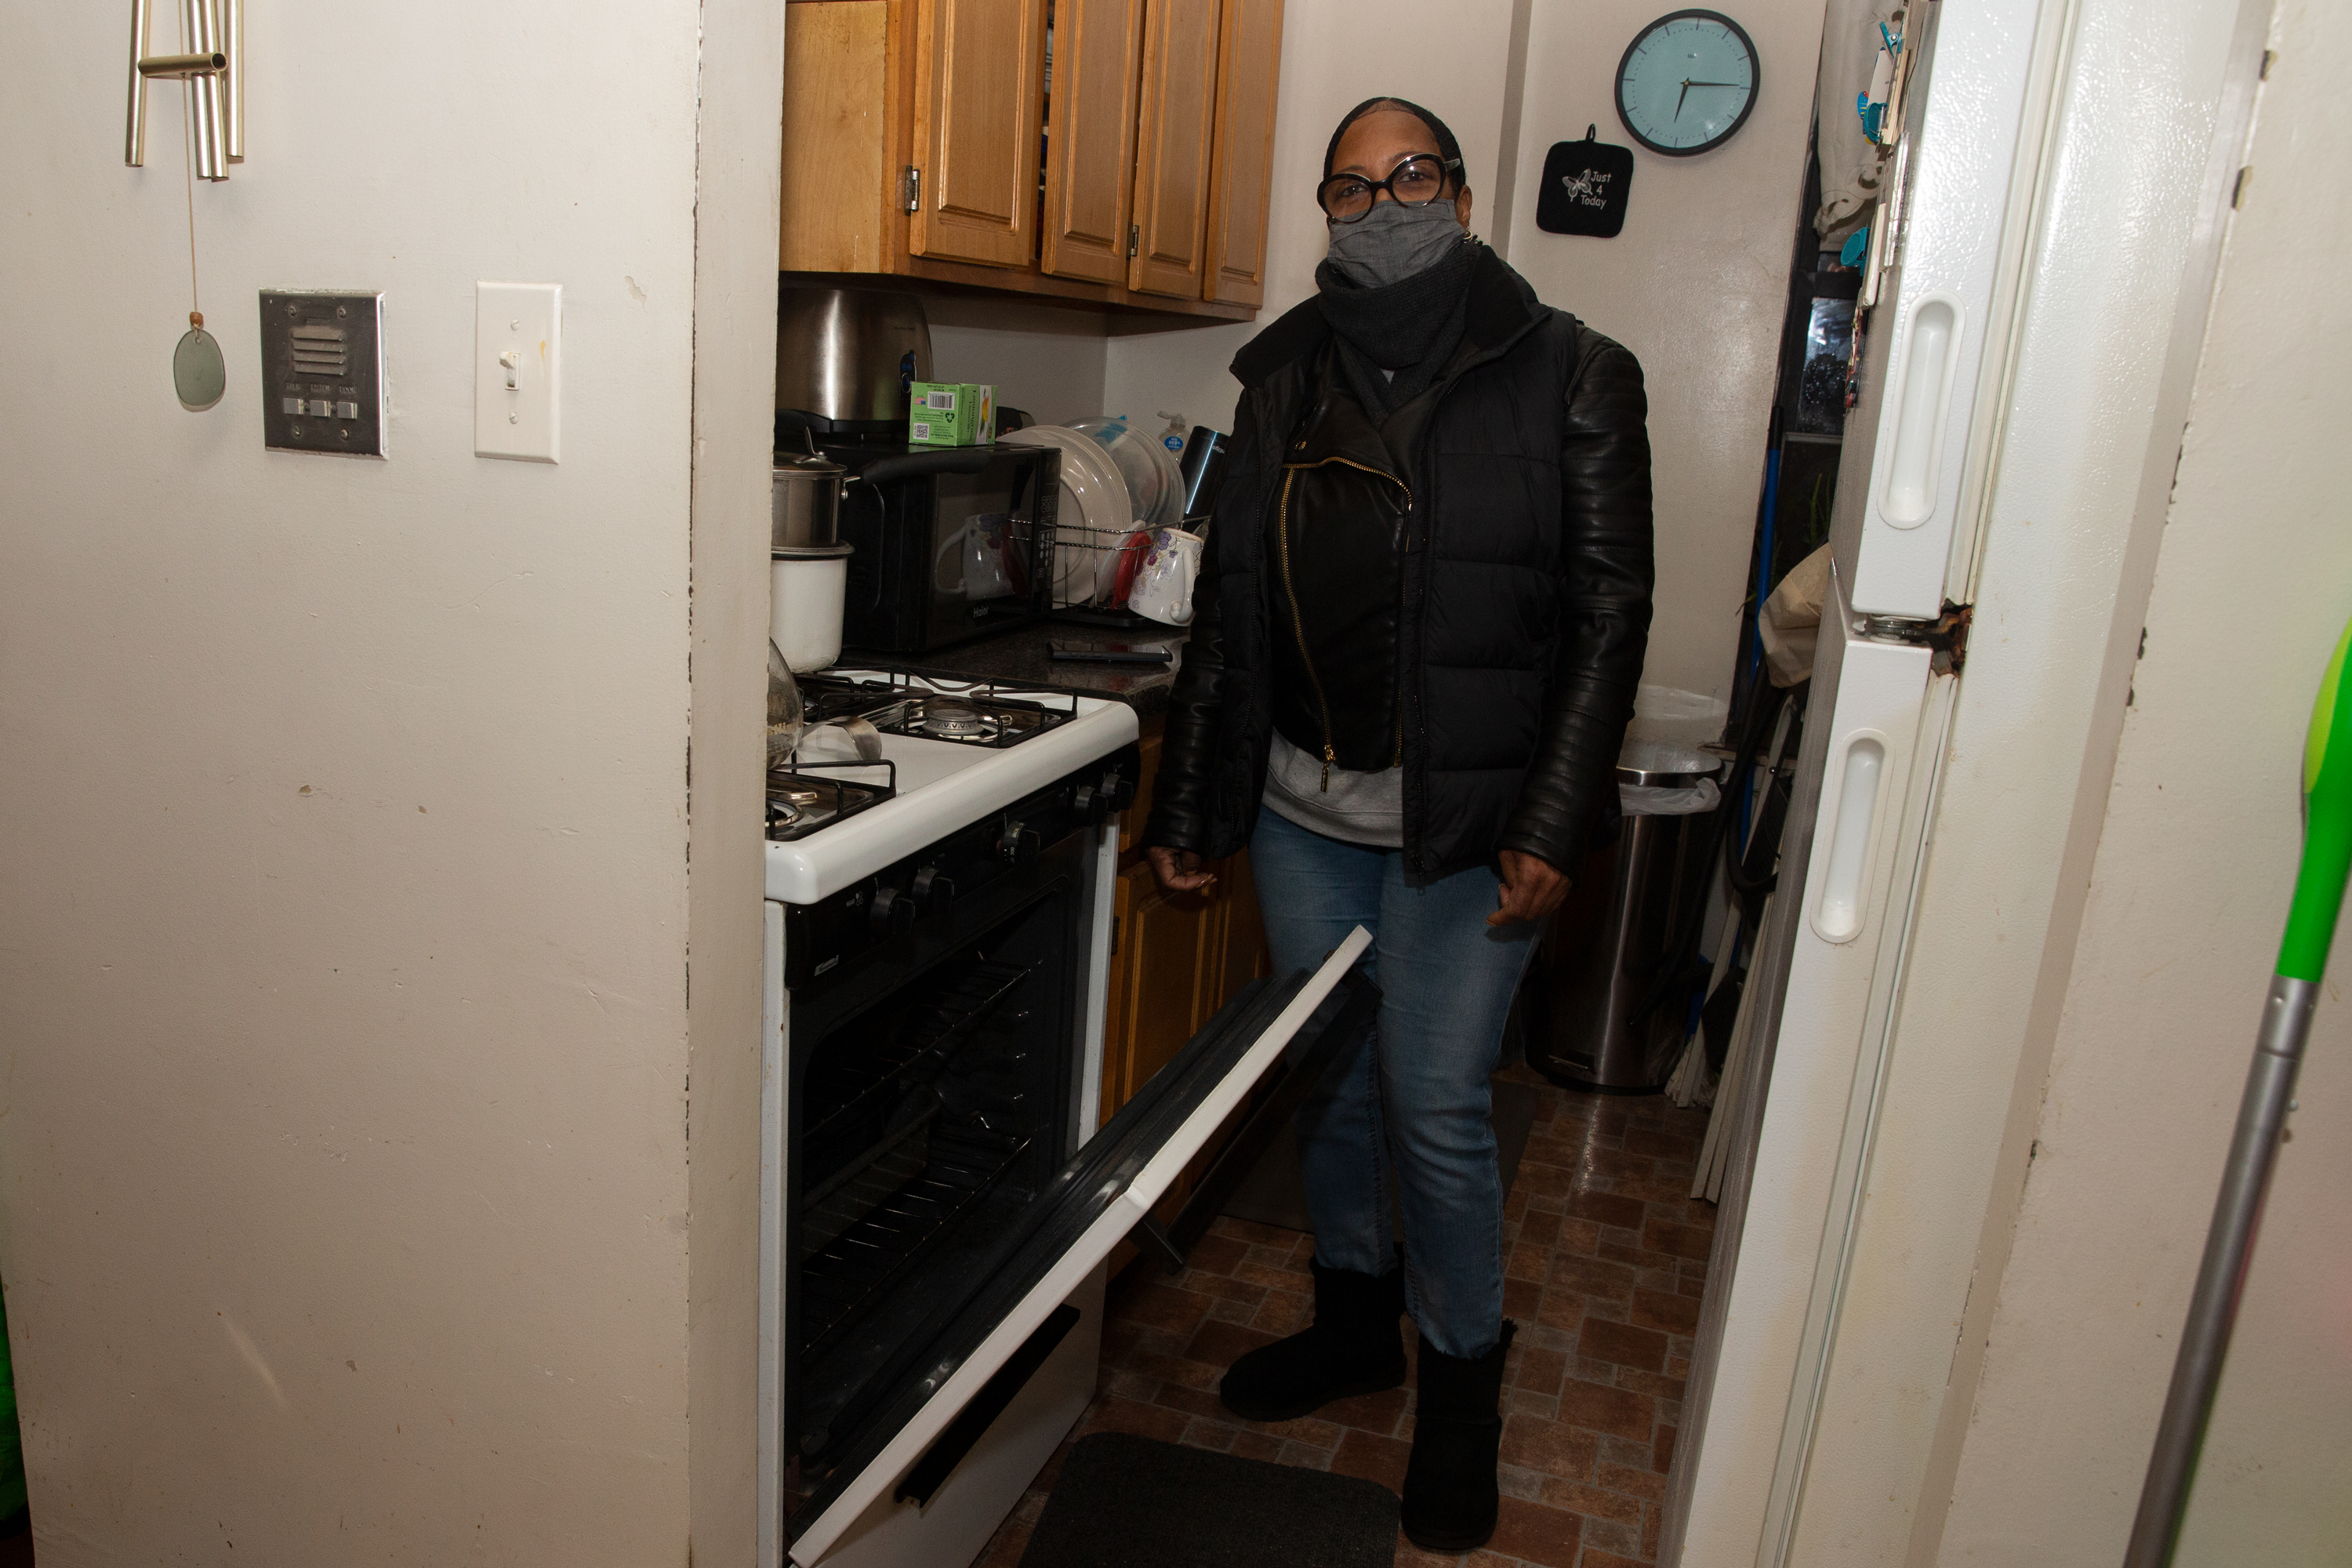 Brownsville resident Debra King uses the oven to help heat her home because the boiler in her building has not been working, Jan. 25, 2021.